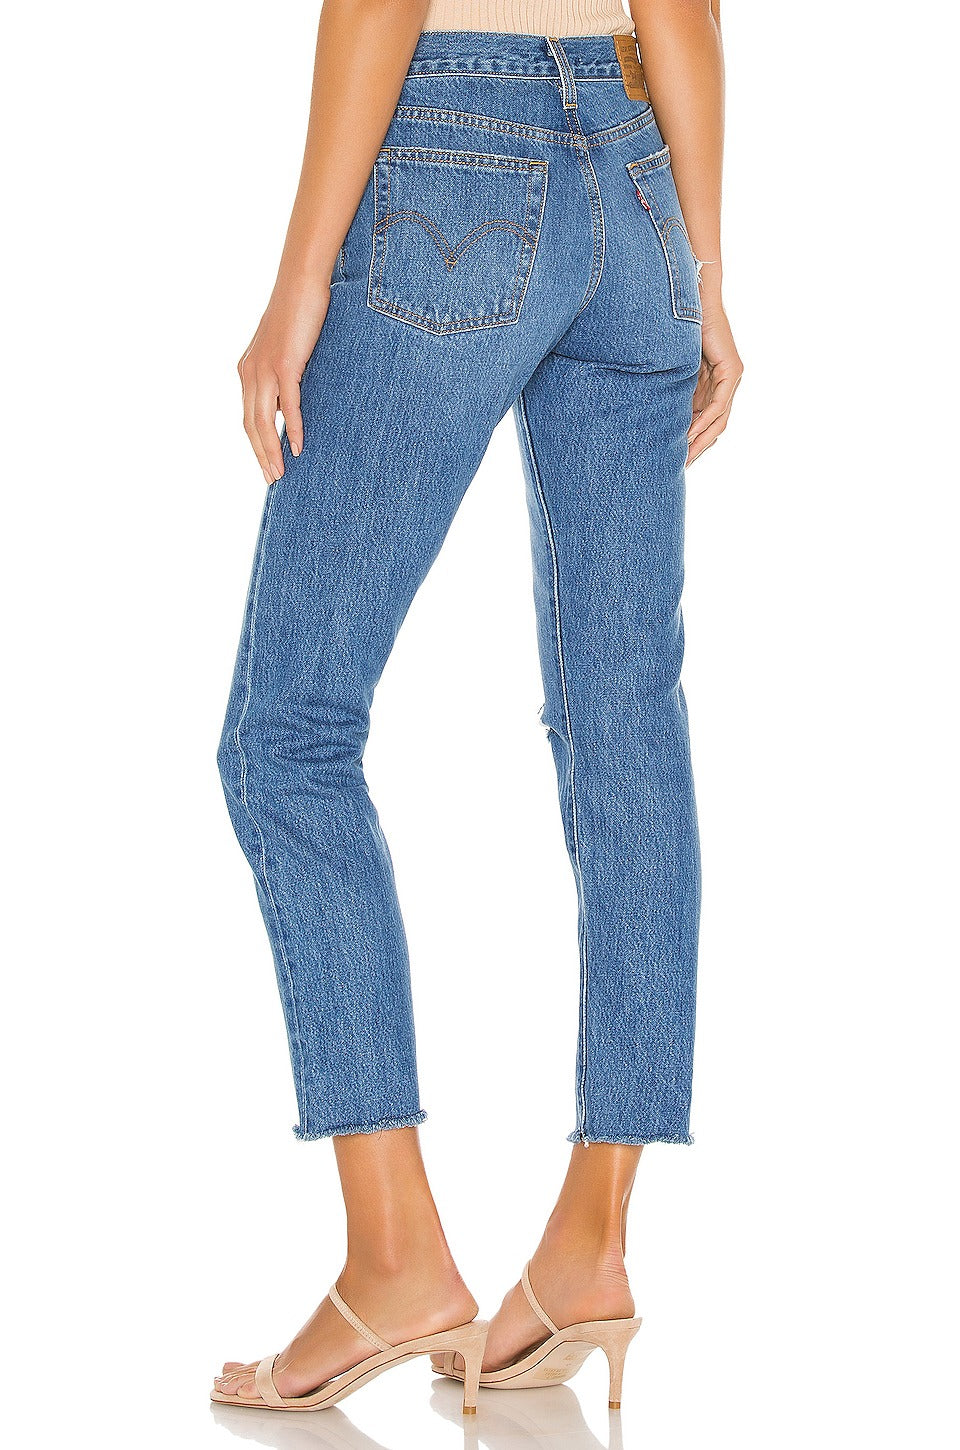 Wedgie Icon Fit Jean in Athens Hera